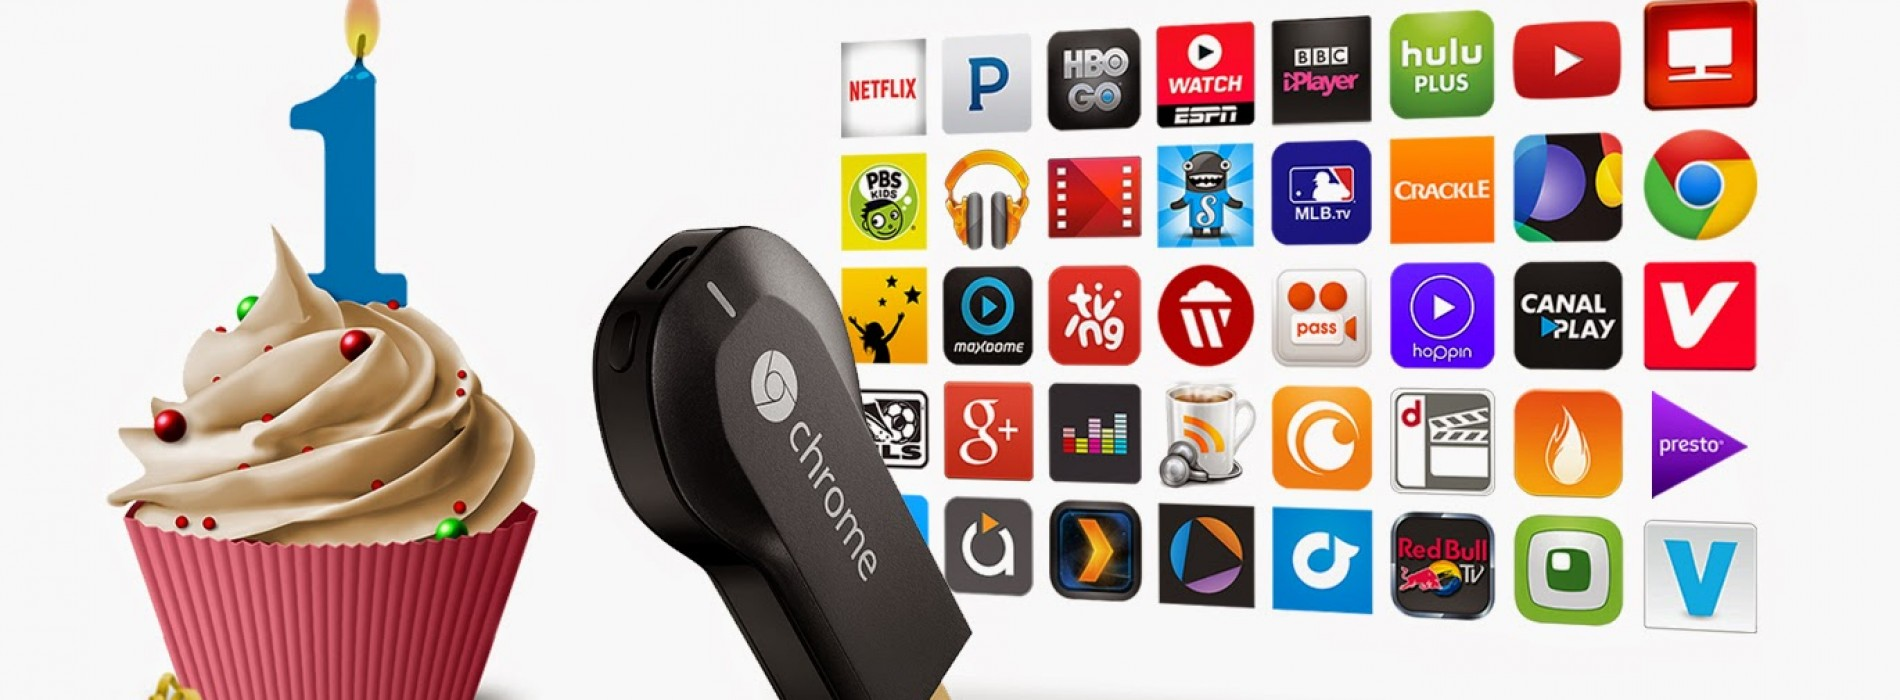 400 million casts later Google's Chromecast turns one